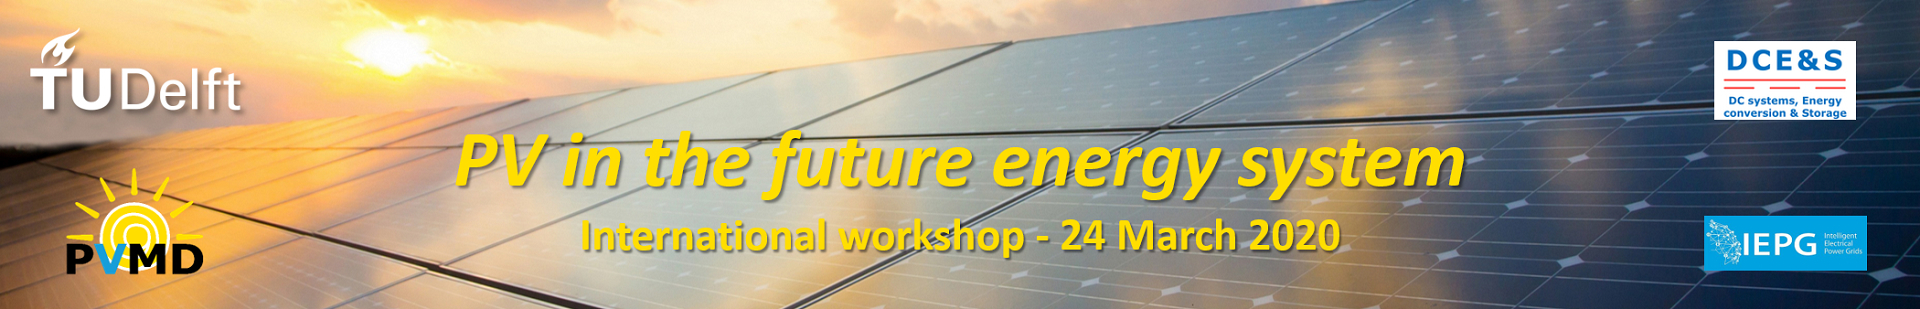 PV in the future energy system